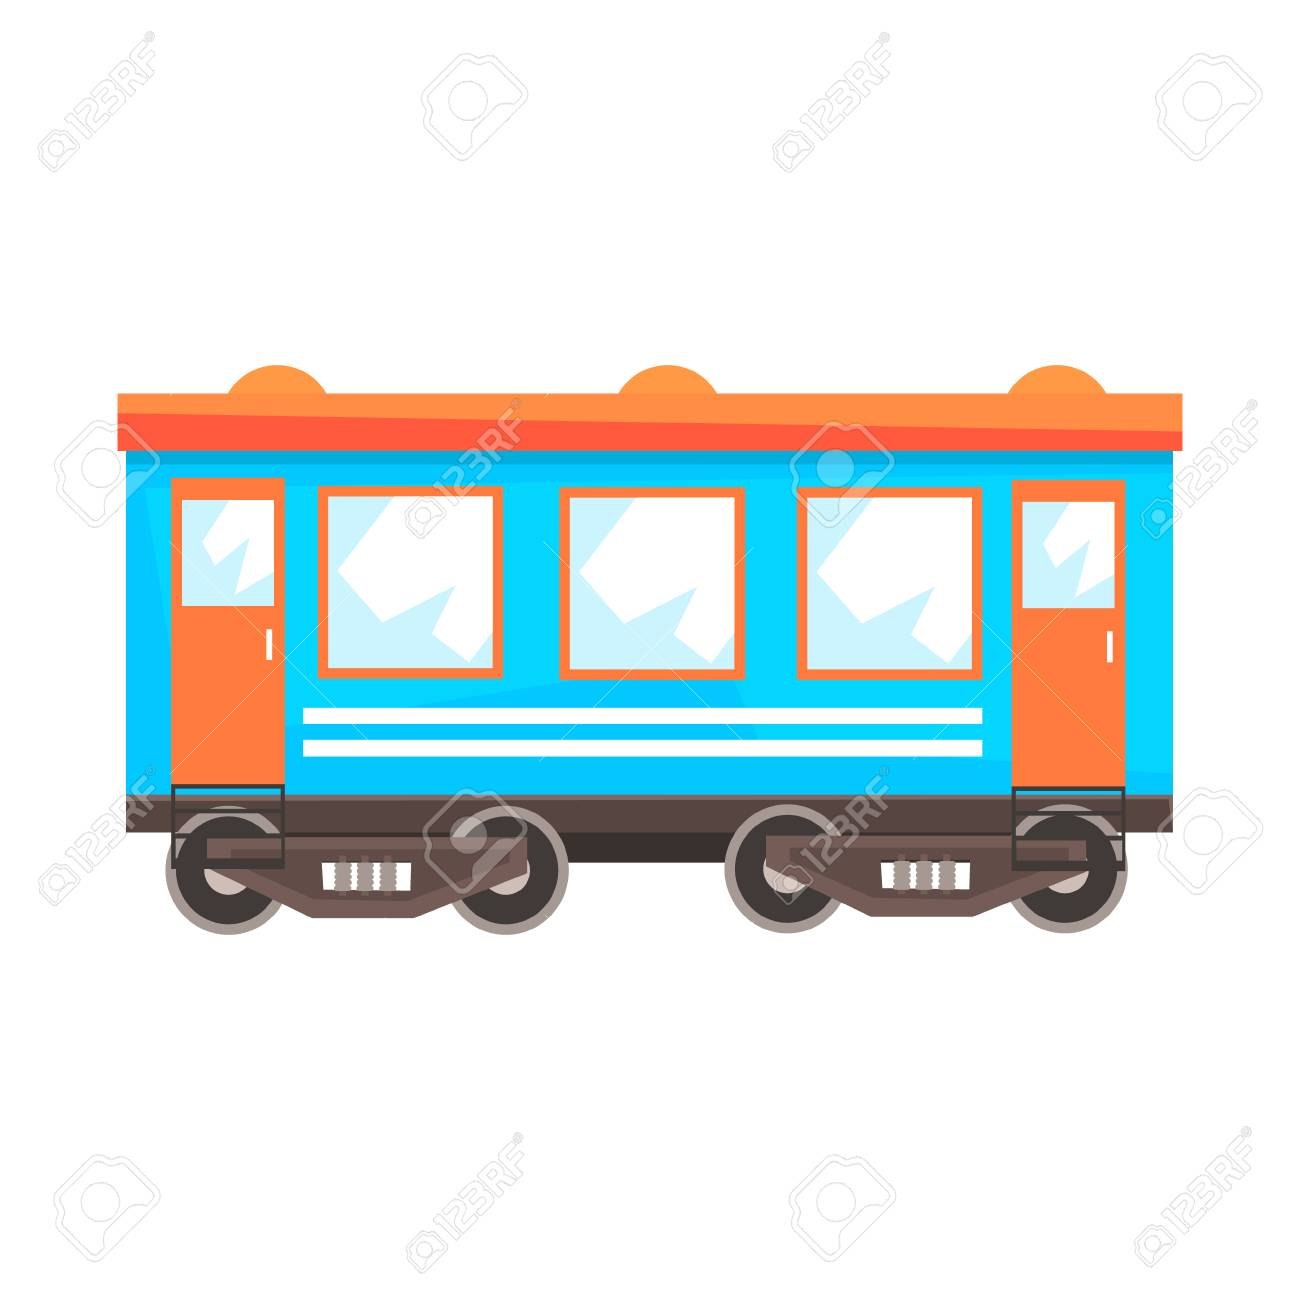 Wagon De Wagon De Chemin De Fer Transport Ferroviaire Illustration